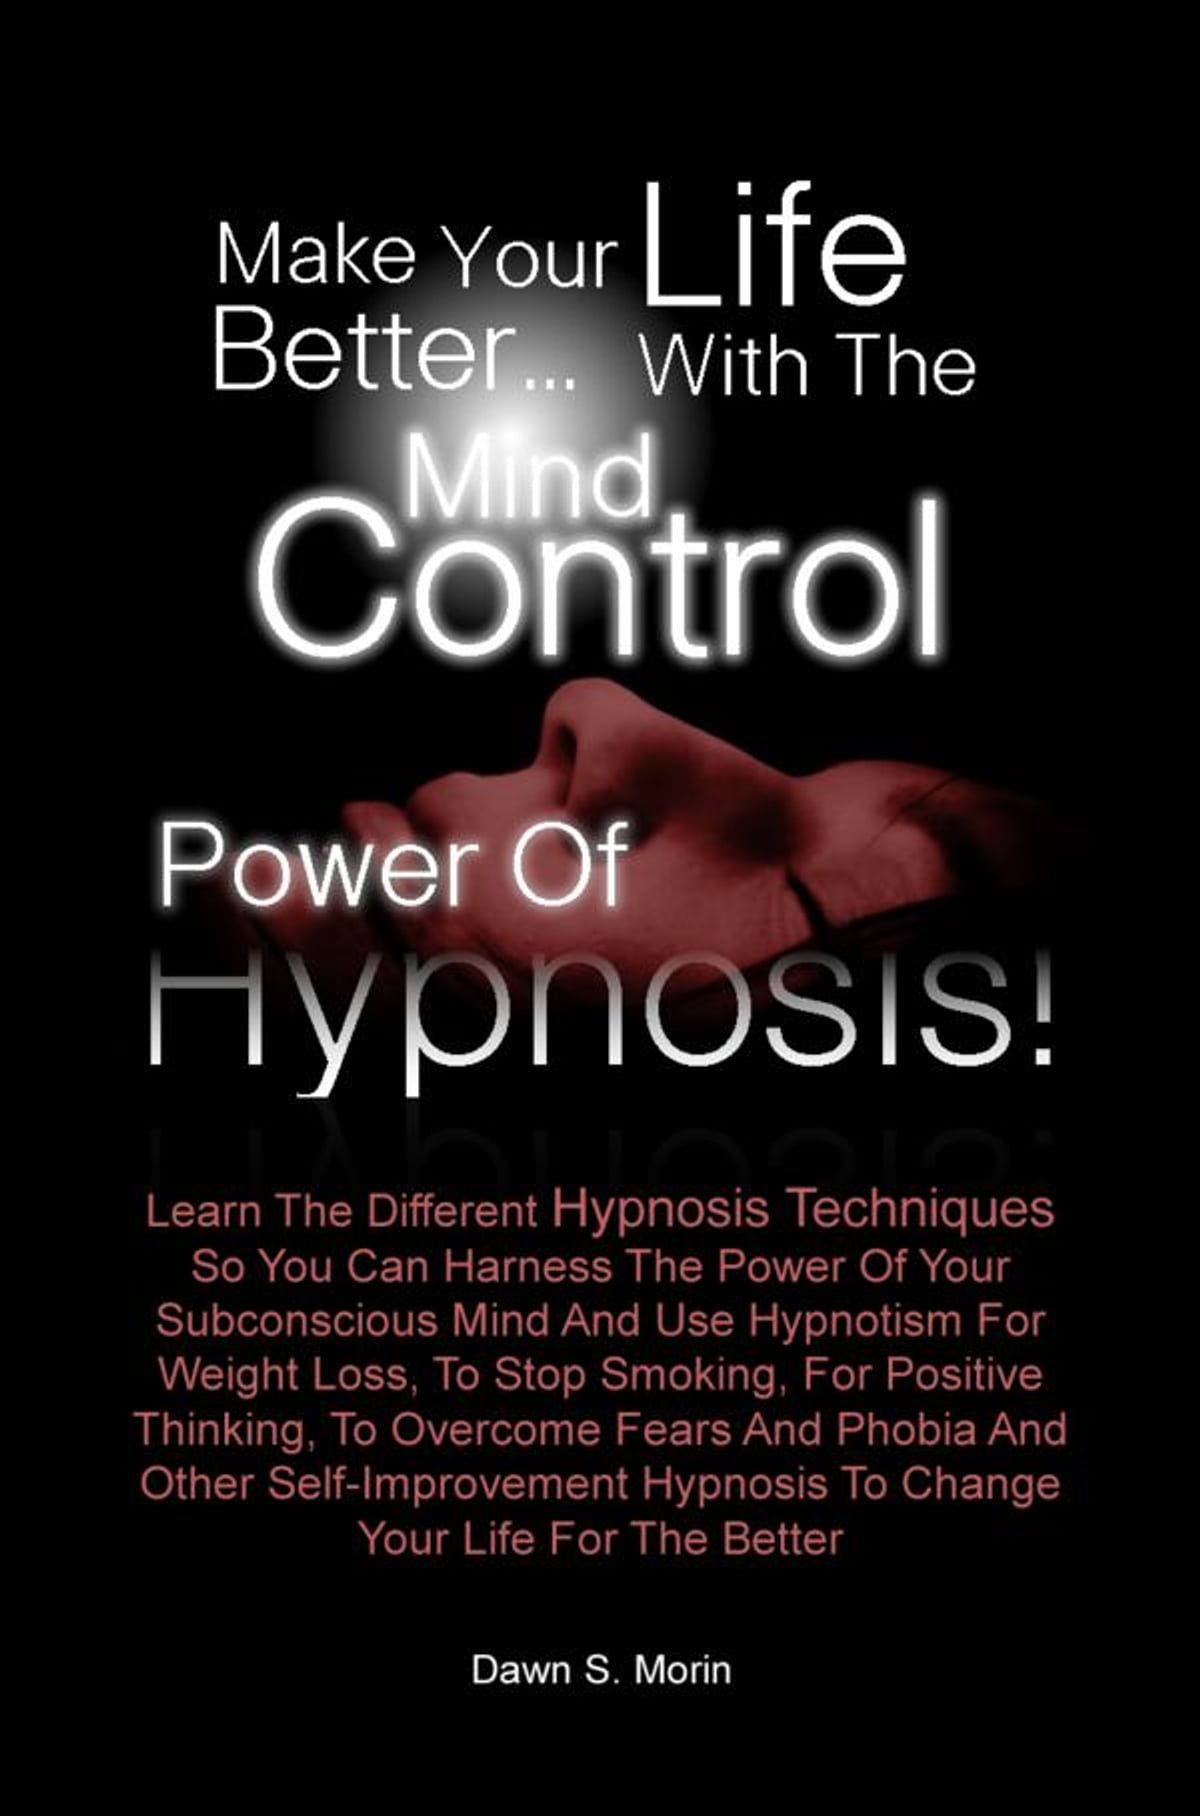 Mind control techniques - Make Your Life Better With The Mind Control Power Of Hypnosis Ebook By Dawn S Morin 1230000022746 Rakuten Kobo